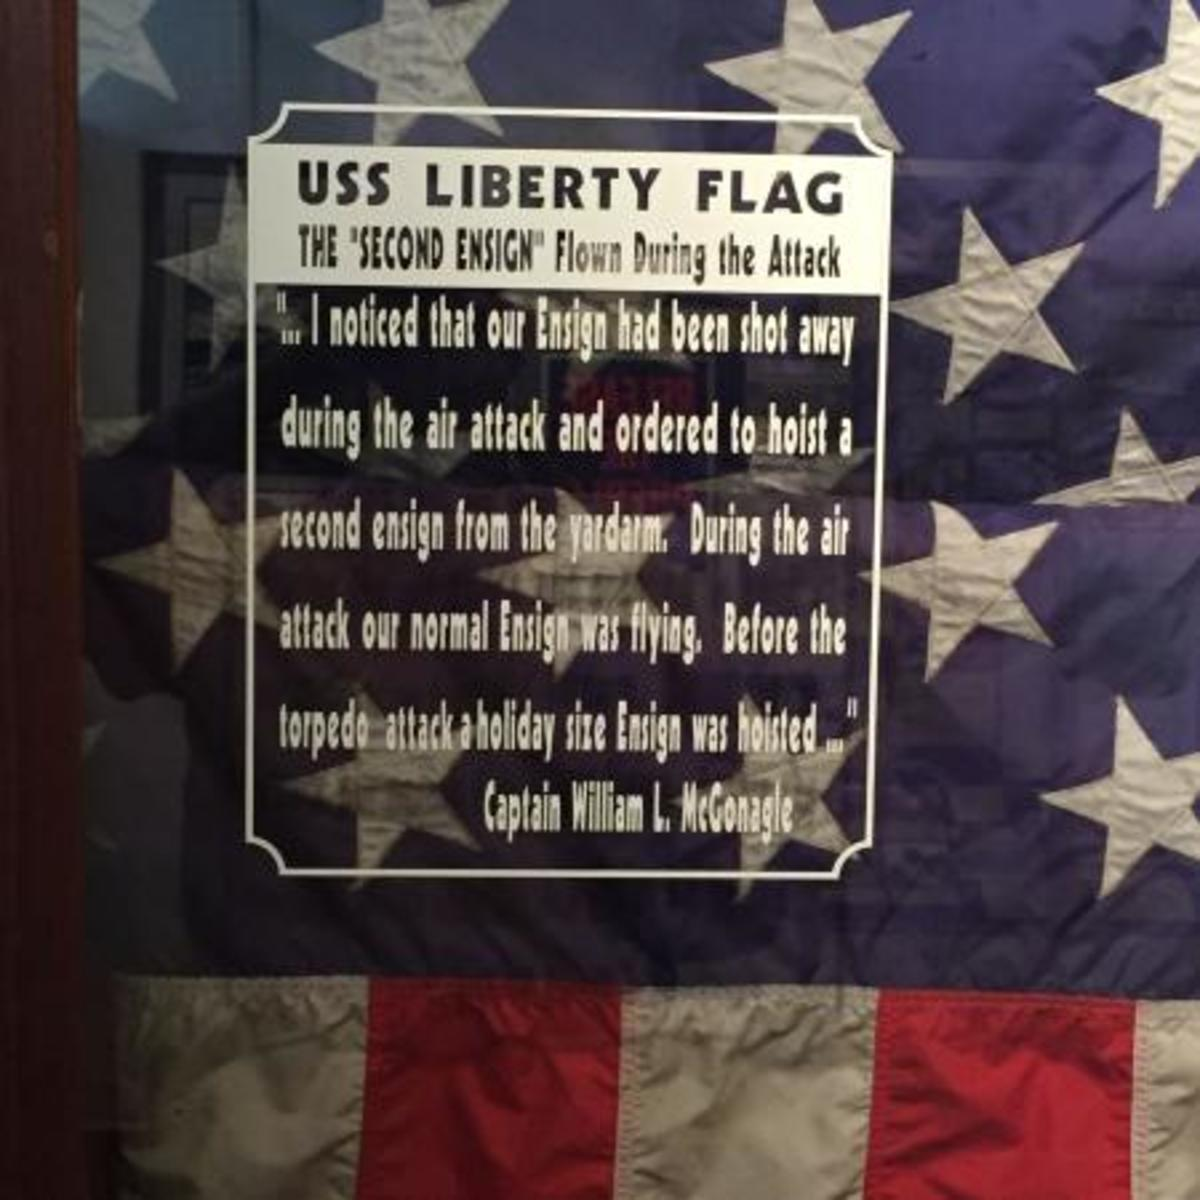 USS Liberty Flag at NSA Museum